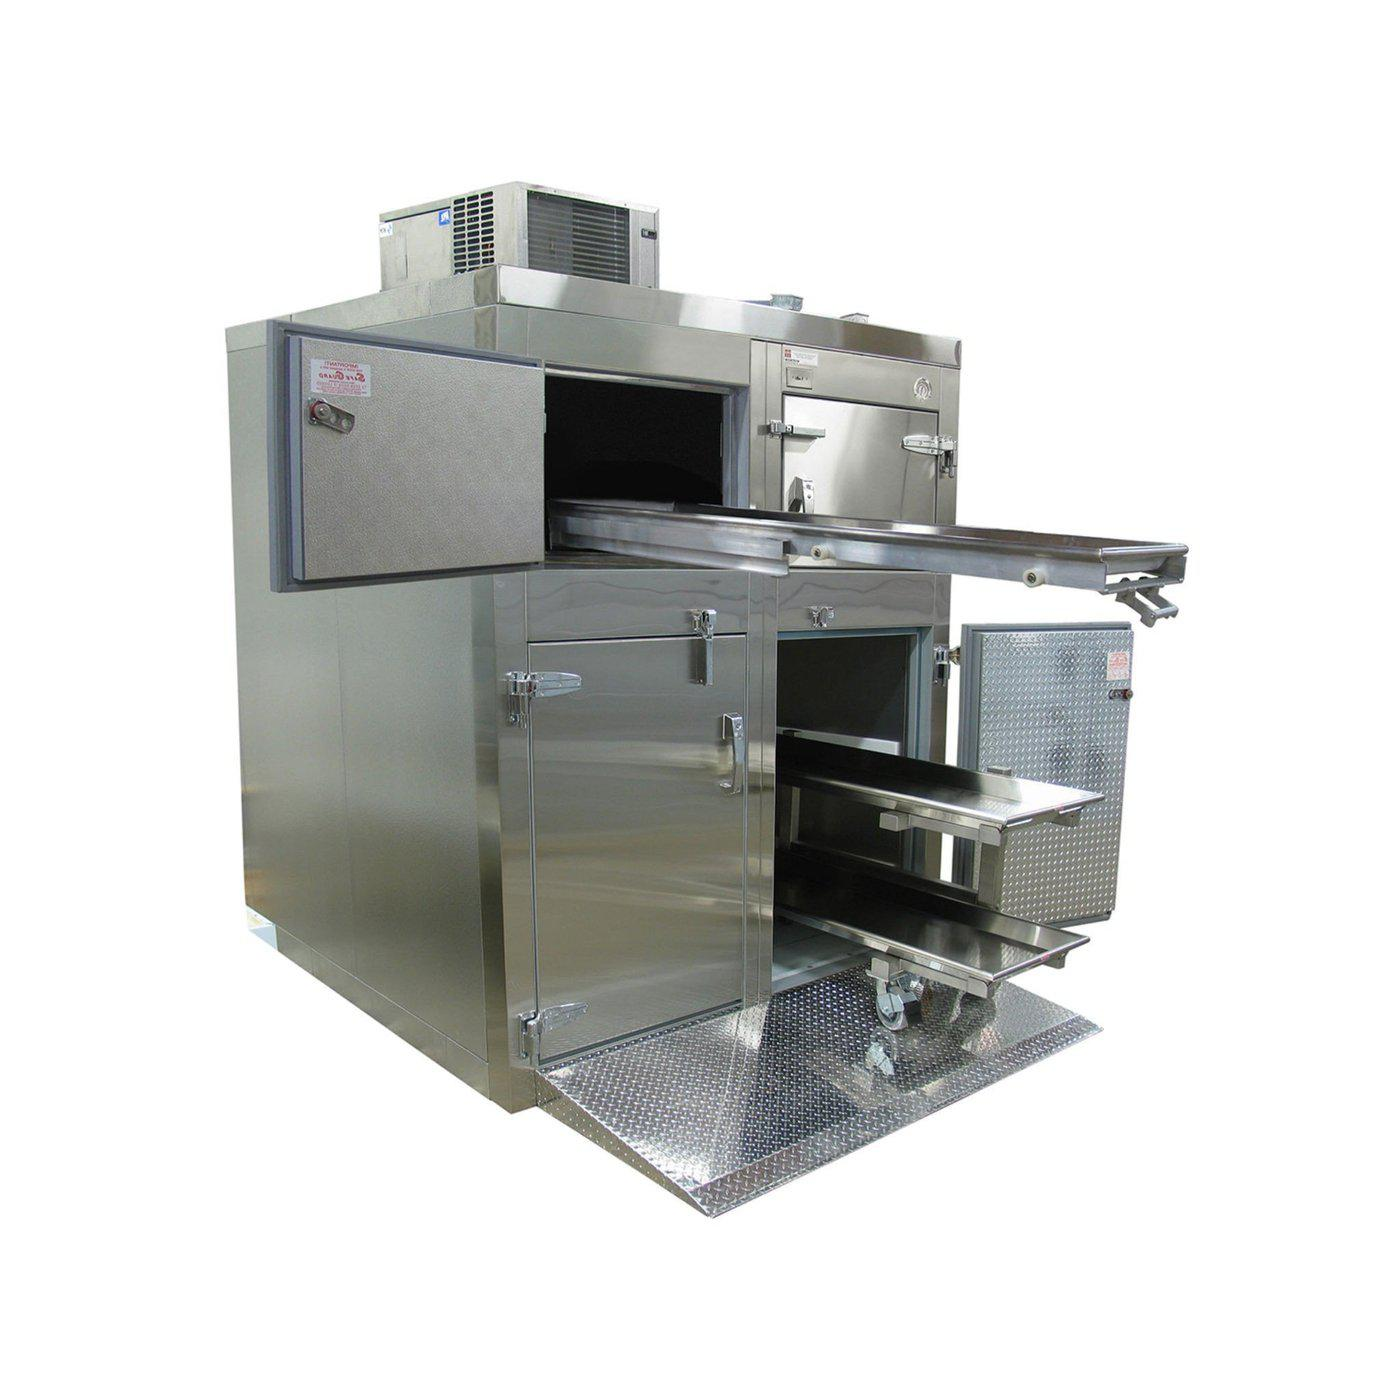 Four or Six Body Tiered Refrigerator-Refrigeration-Mortech Manufacturing Company Inc. Quality Stainless Steel Autopsy, Morgue, Funeral Home, Necropsy, Veterinary / Anatomy, Dissection Equipment and Accessories